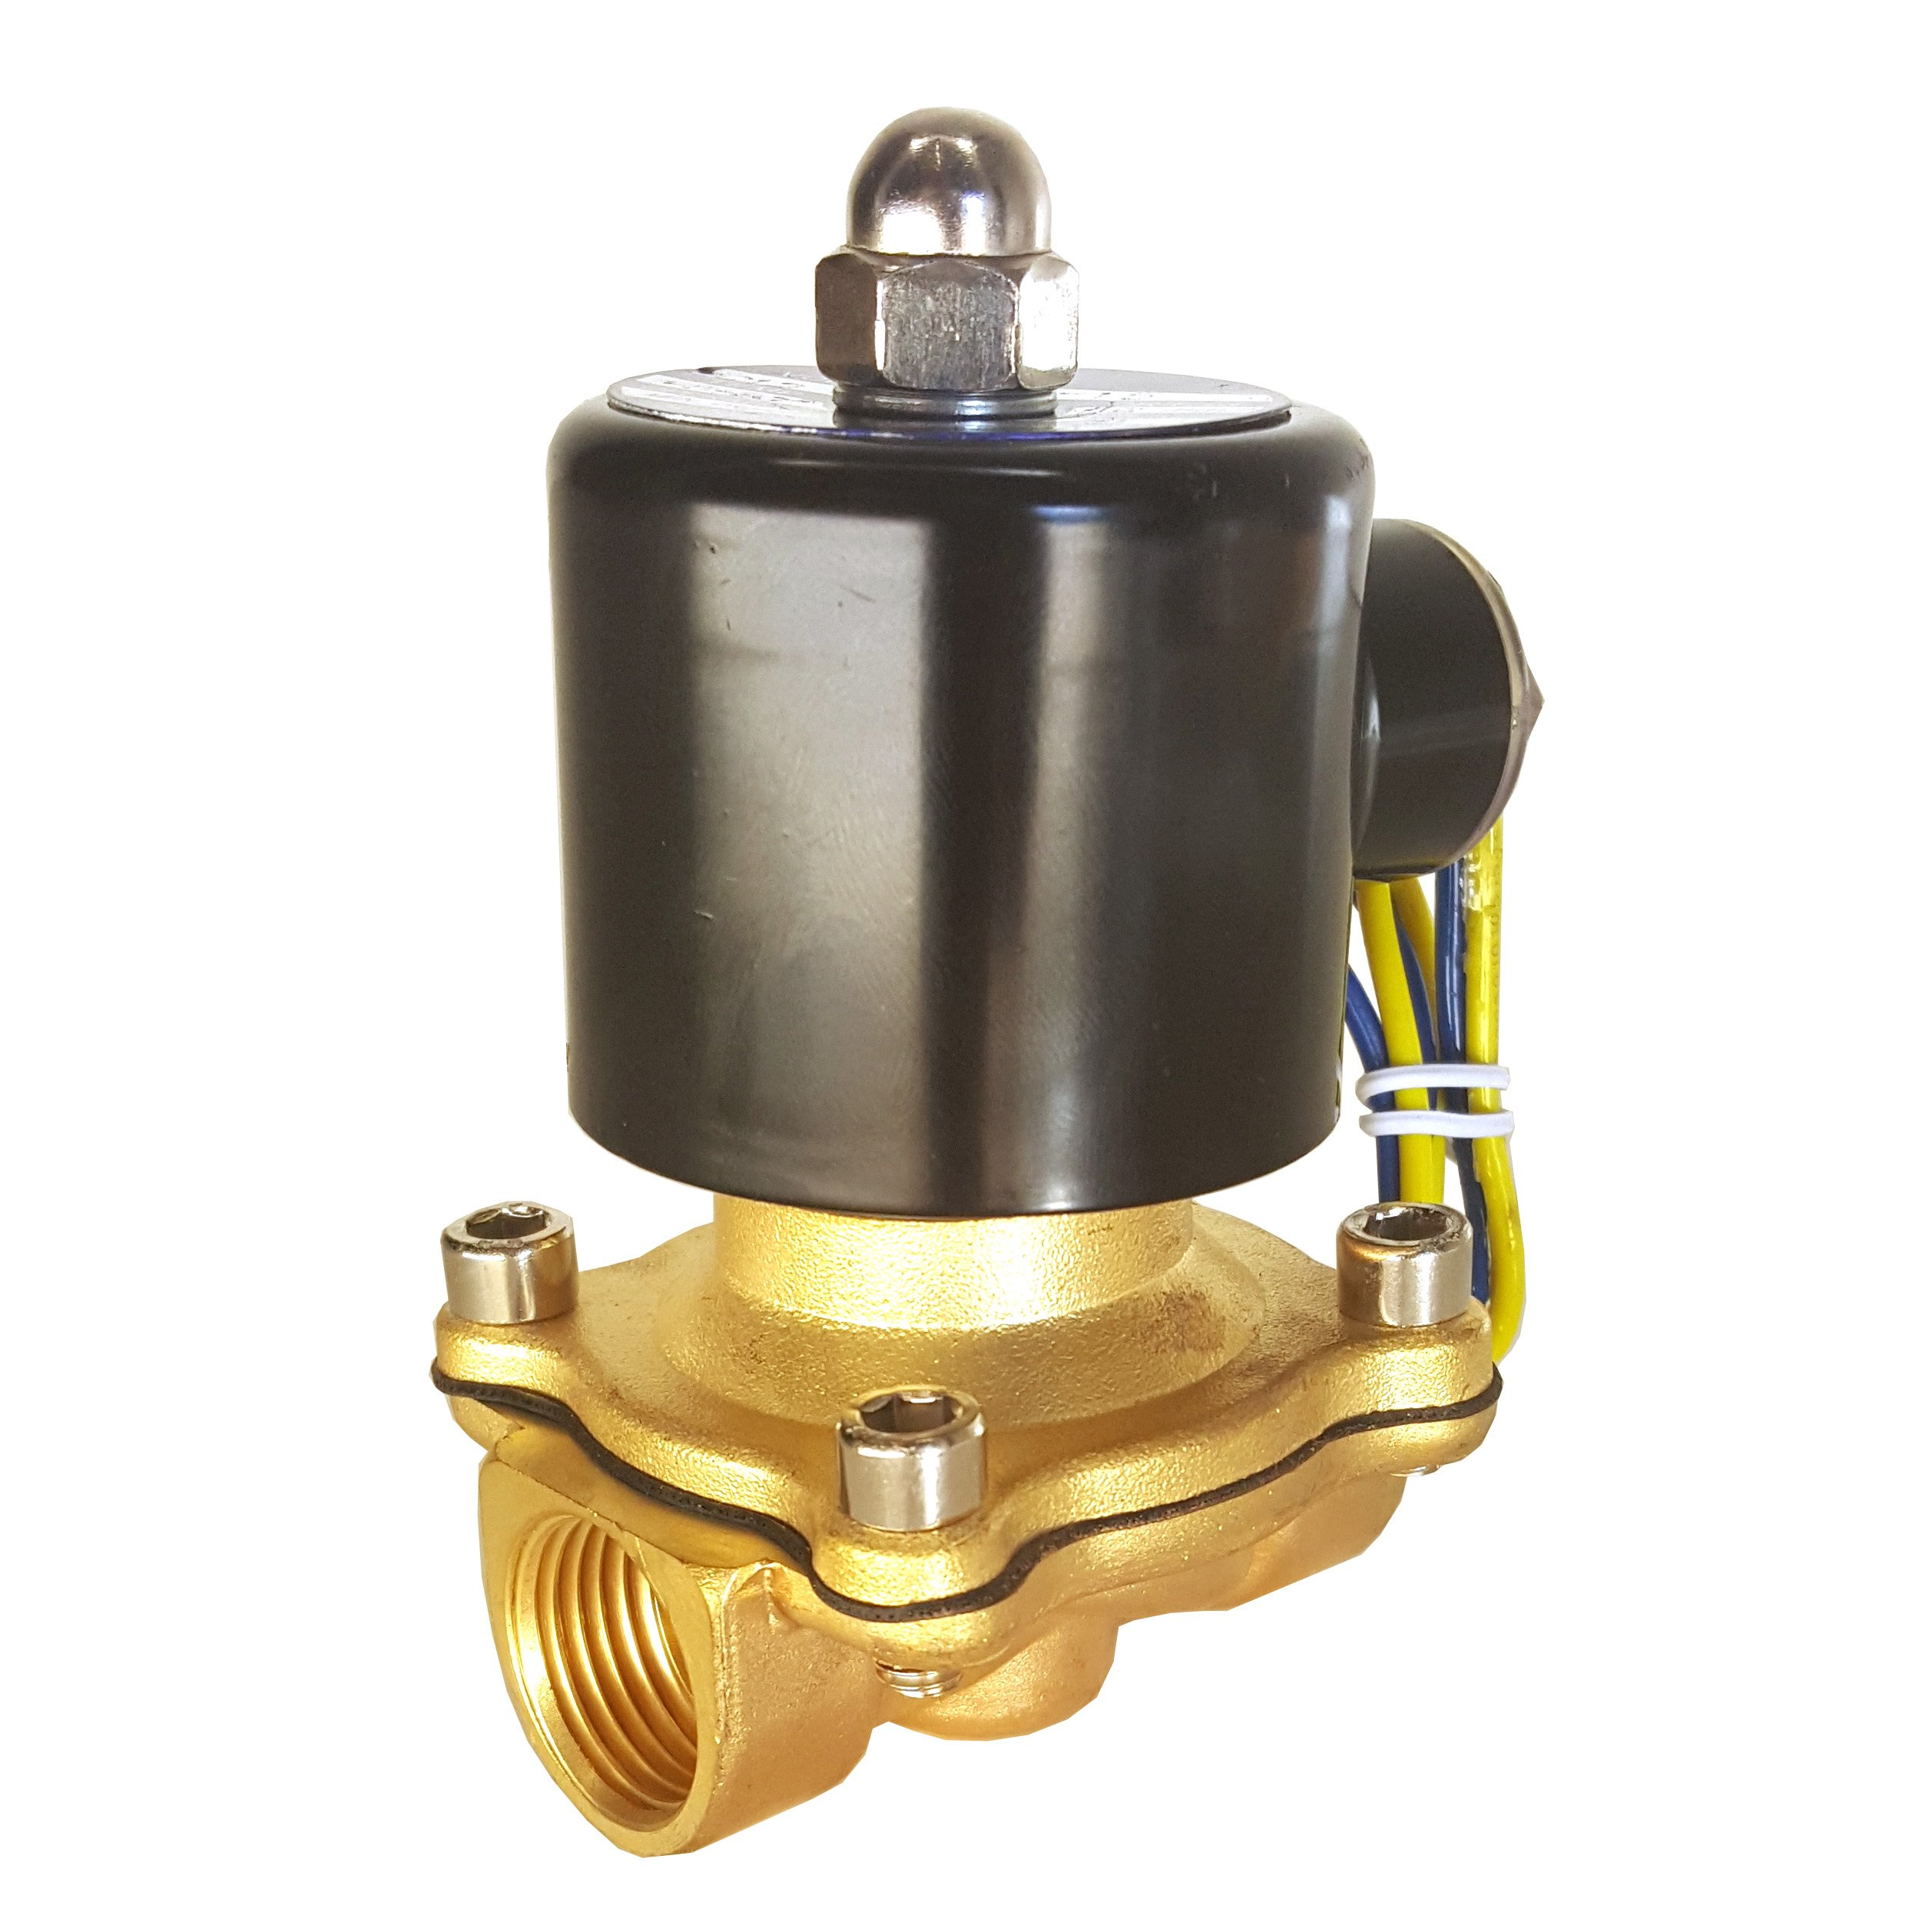 HFS 110v Ac or 12v Dc Electric Solenoid Valve Water Air Gas, Fuels N/c - 1/4'', 1/2'', 3/4'', 1'' NPT Available (12V DC 1/2'' NPT) by HFS (Image #2)